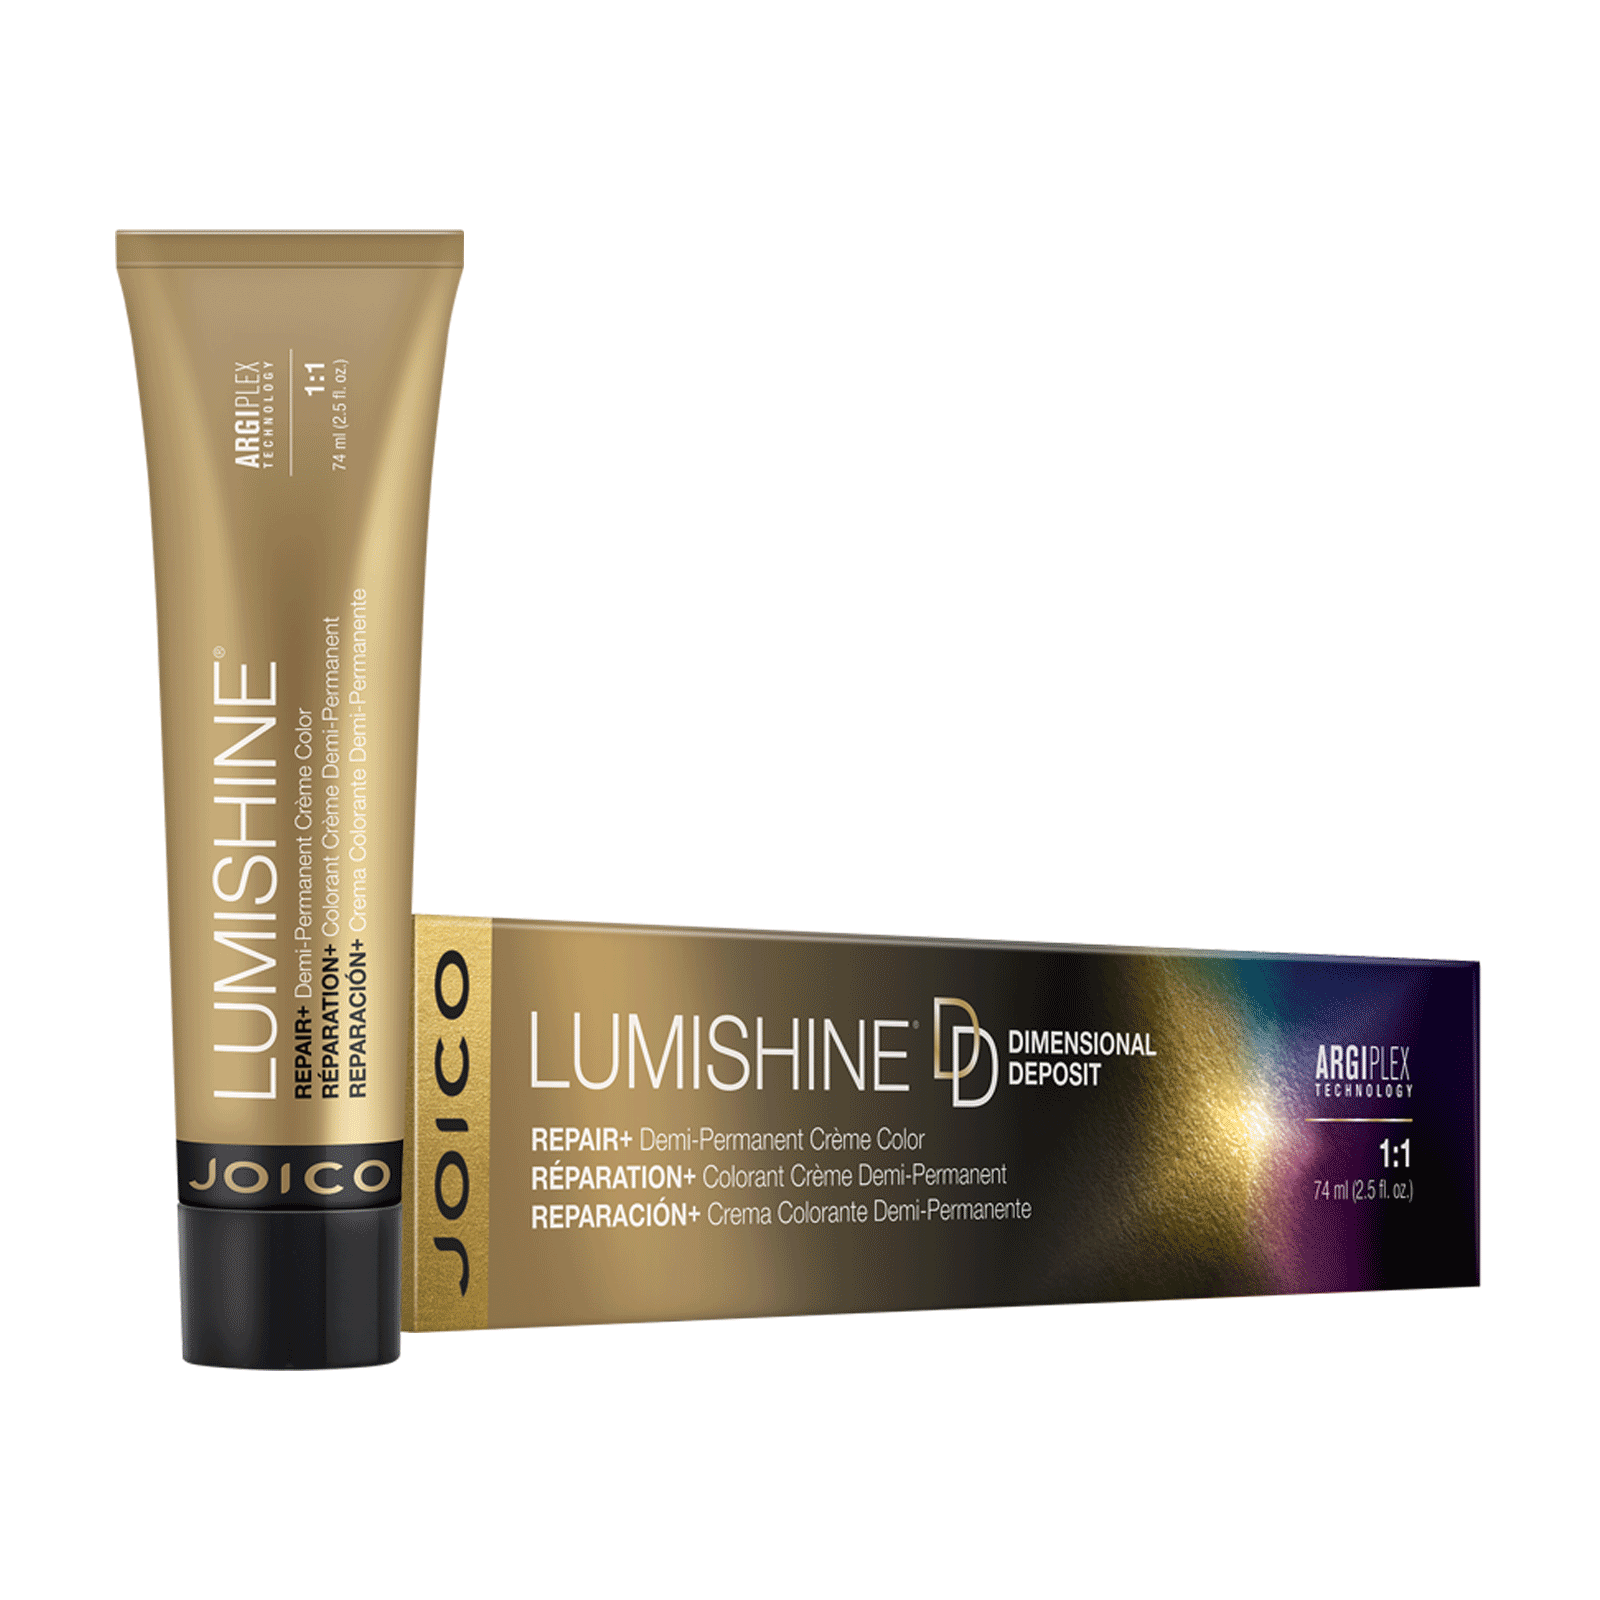 Lumishine DD Creme Color Shade Collection